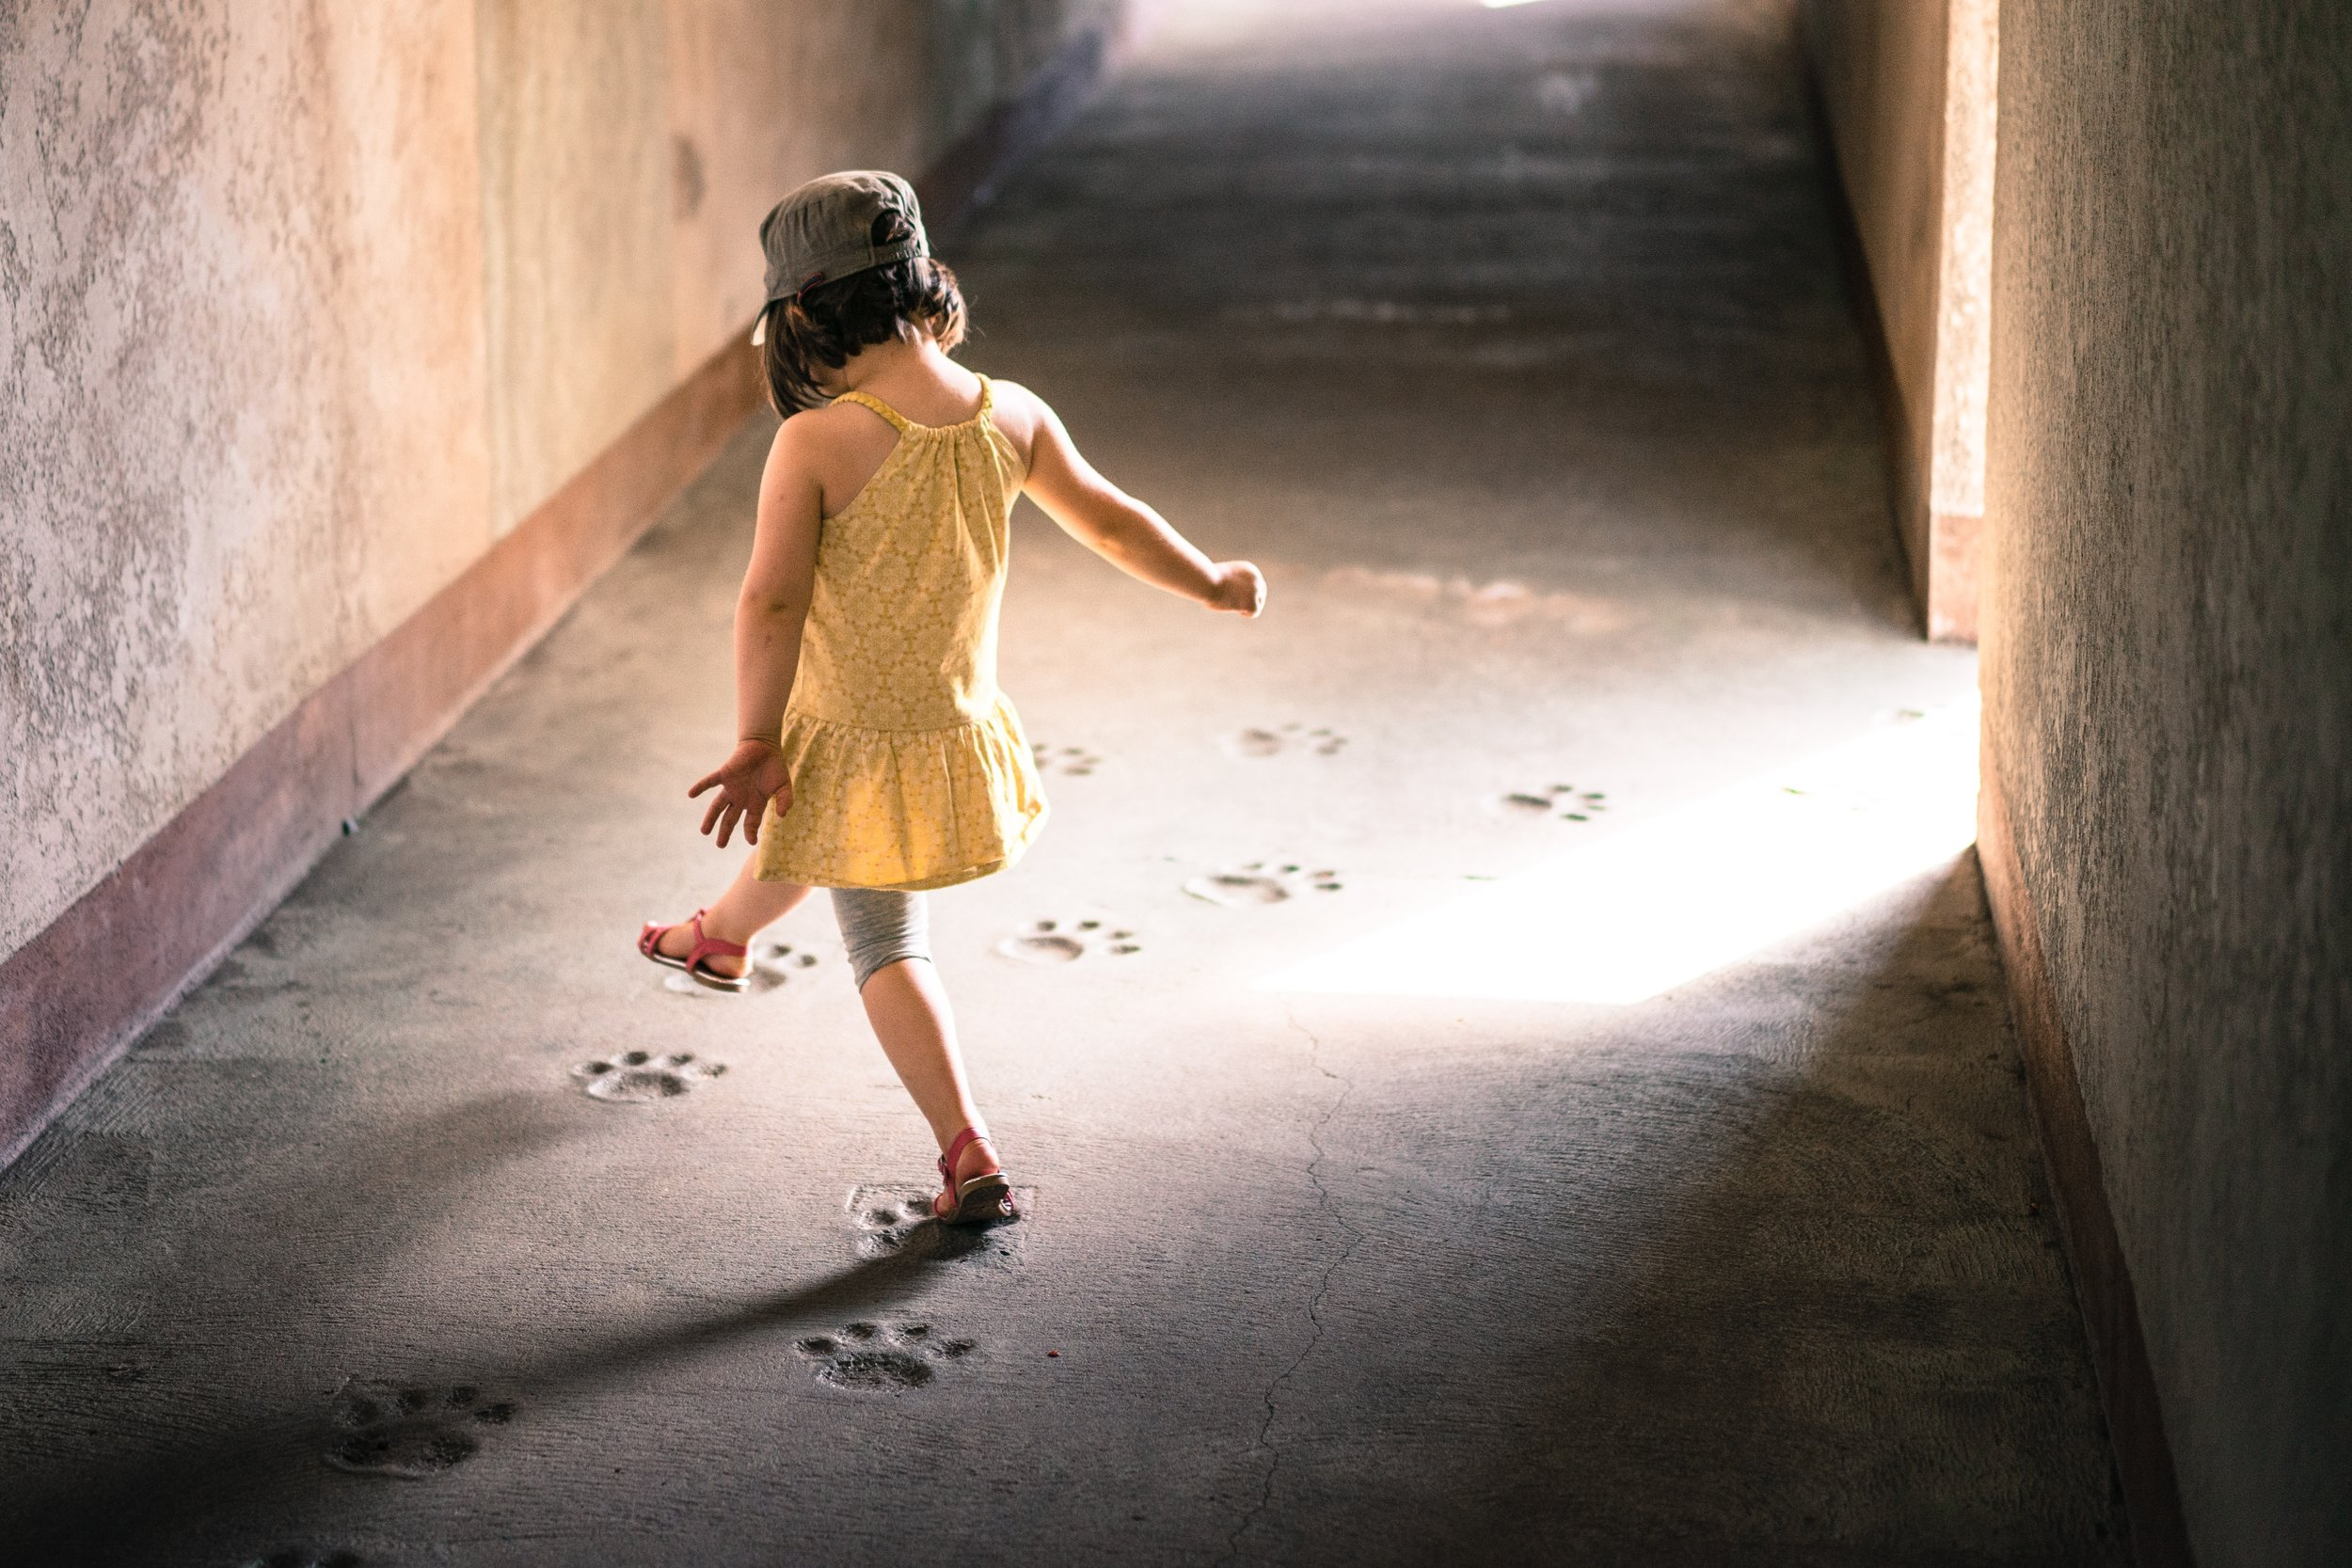 A little girl walking in the path of paw prints. Change it up to feel better. Photo by  Hugues de BUYER-MIMEURE  on  Unsplash